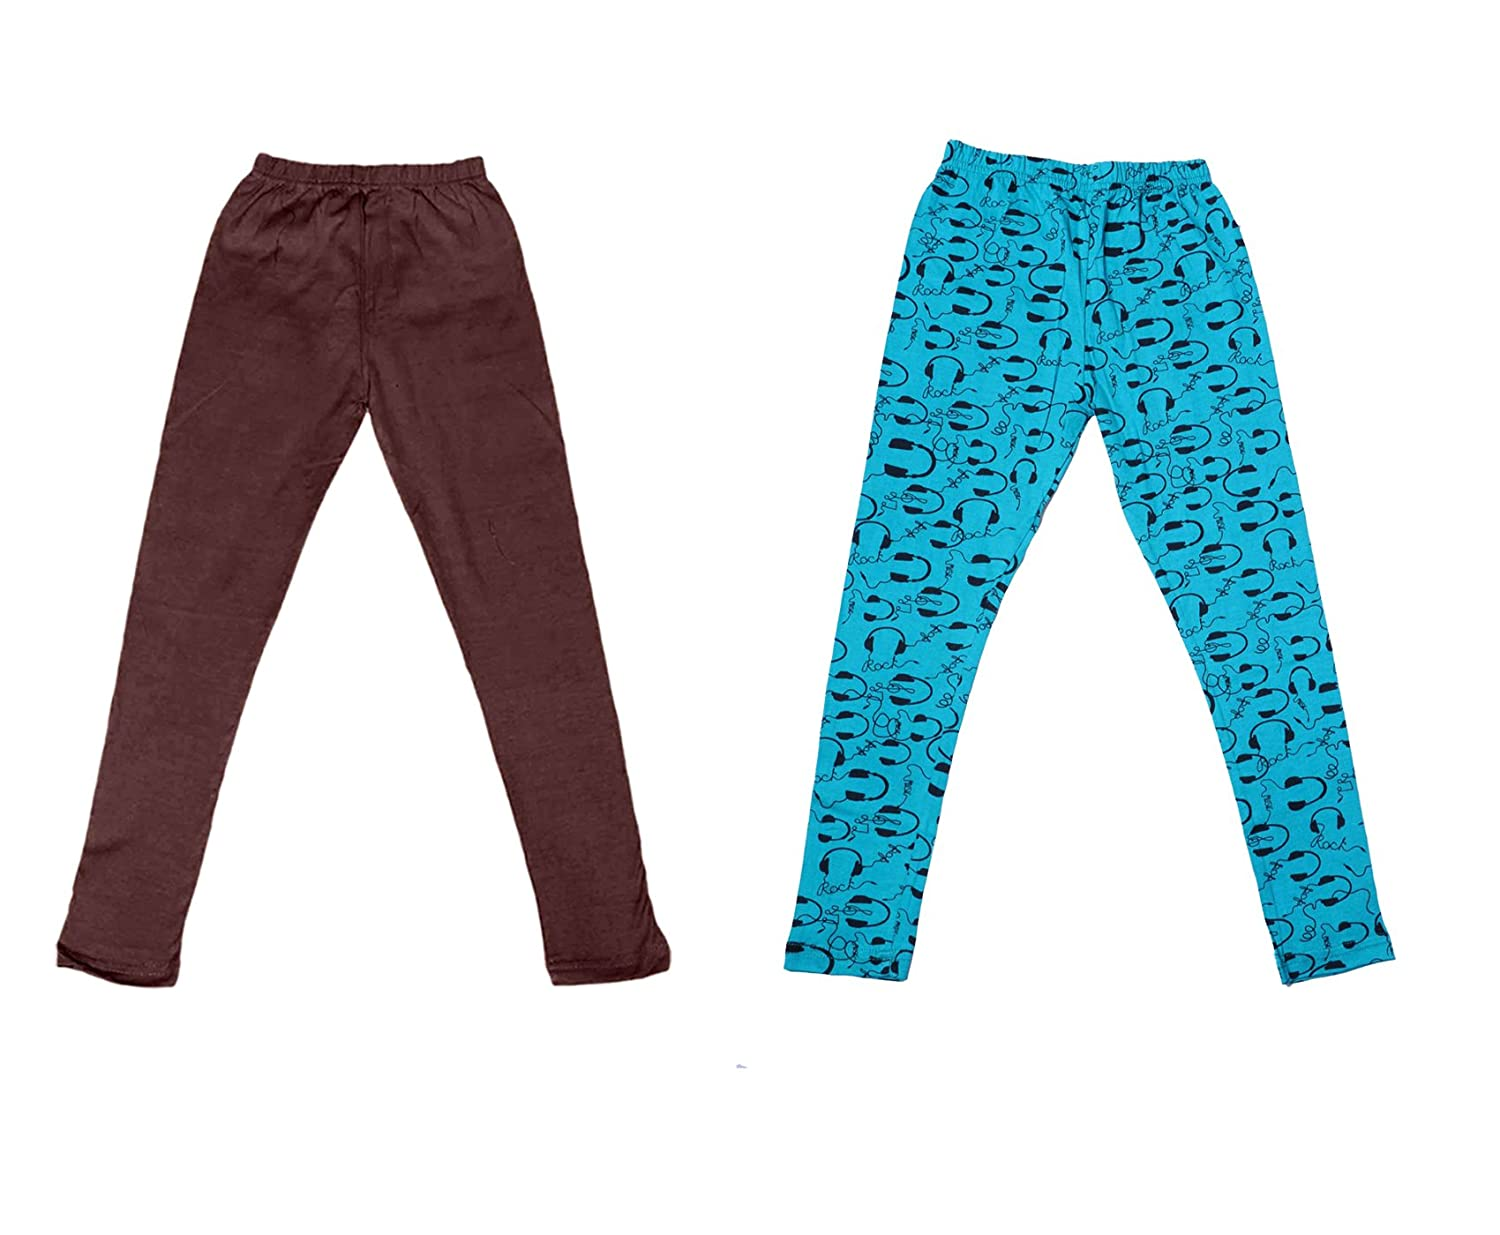 /_Multicolor/_Size-7-8 Years/_71403041920-IW-P4-30 Indistar Girls 2 Cotton Solid Legging Pants Pack Of 4 and 2 Cotton Printed Legging Pants